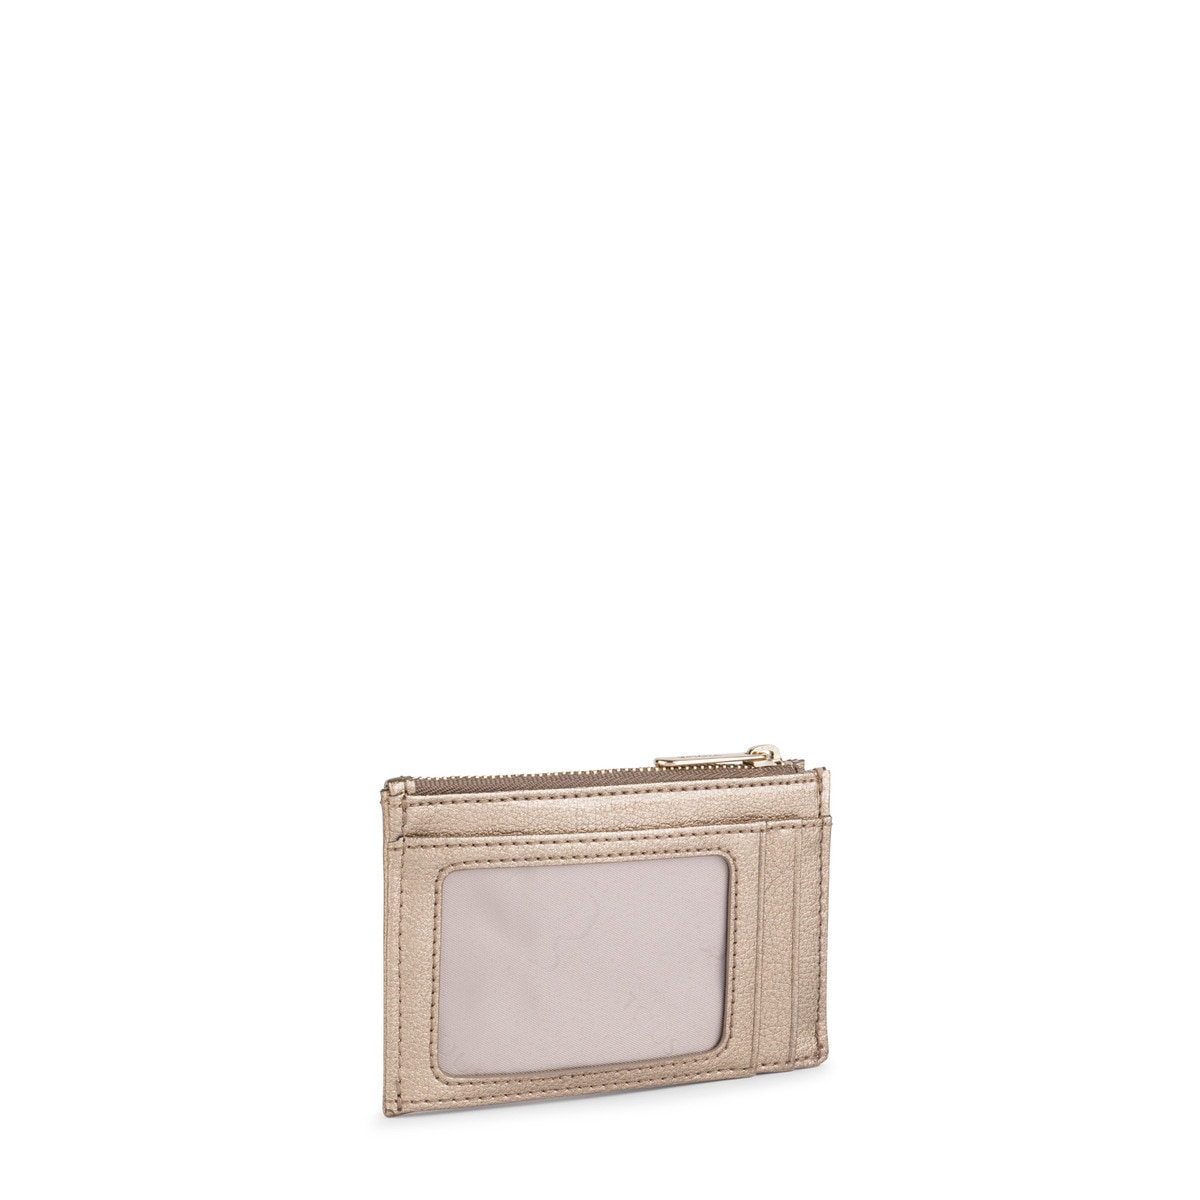 Gold colored Dorp Change purse